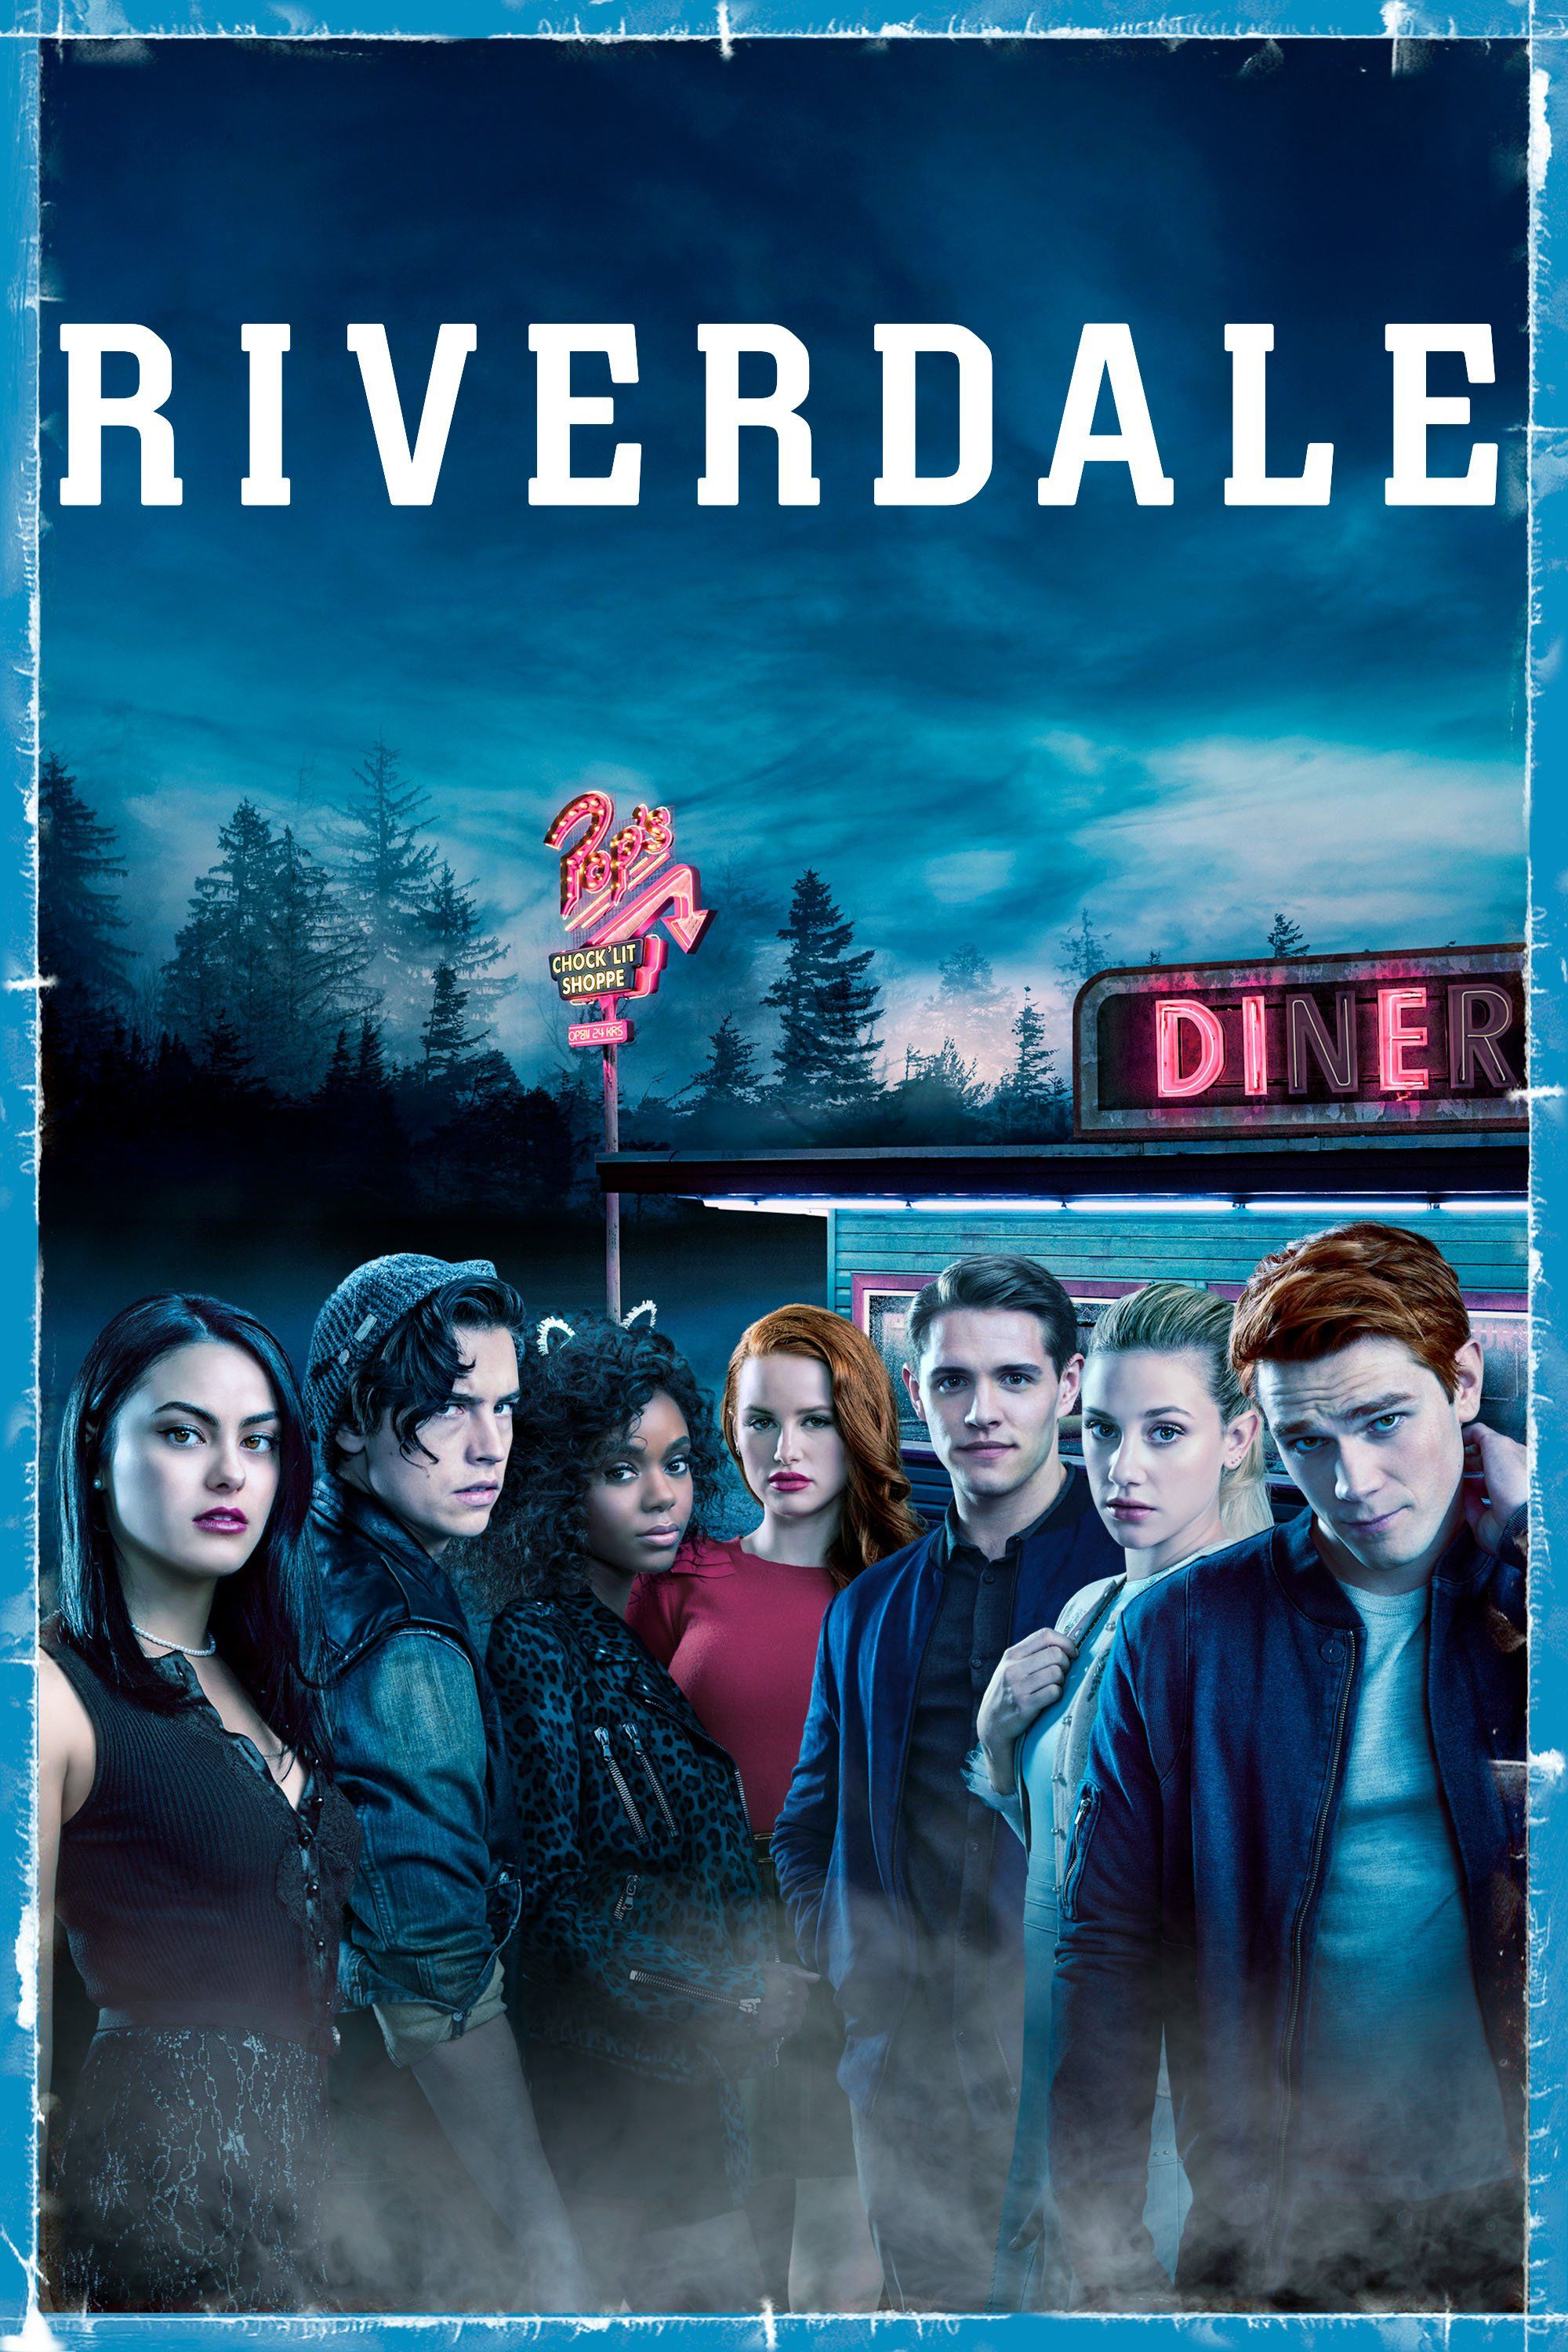 Watch riverdale full episode free movies online for H2o tv show season 4